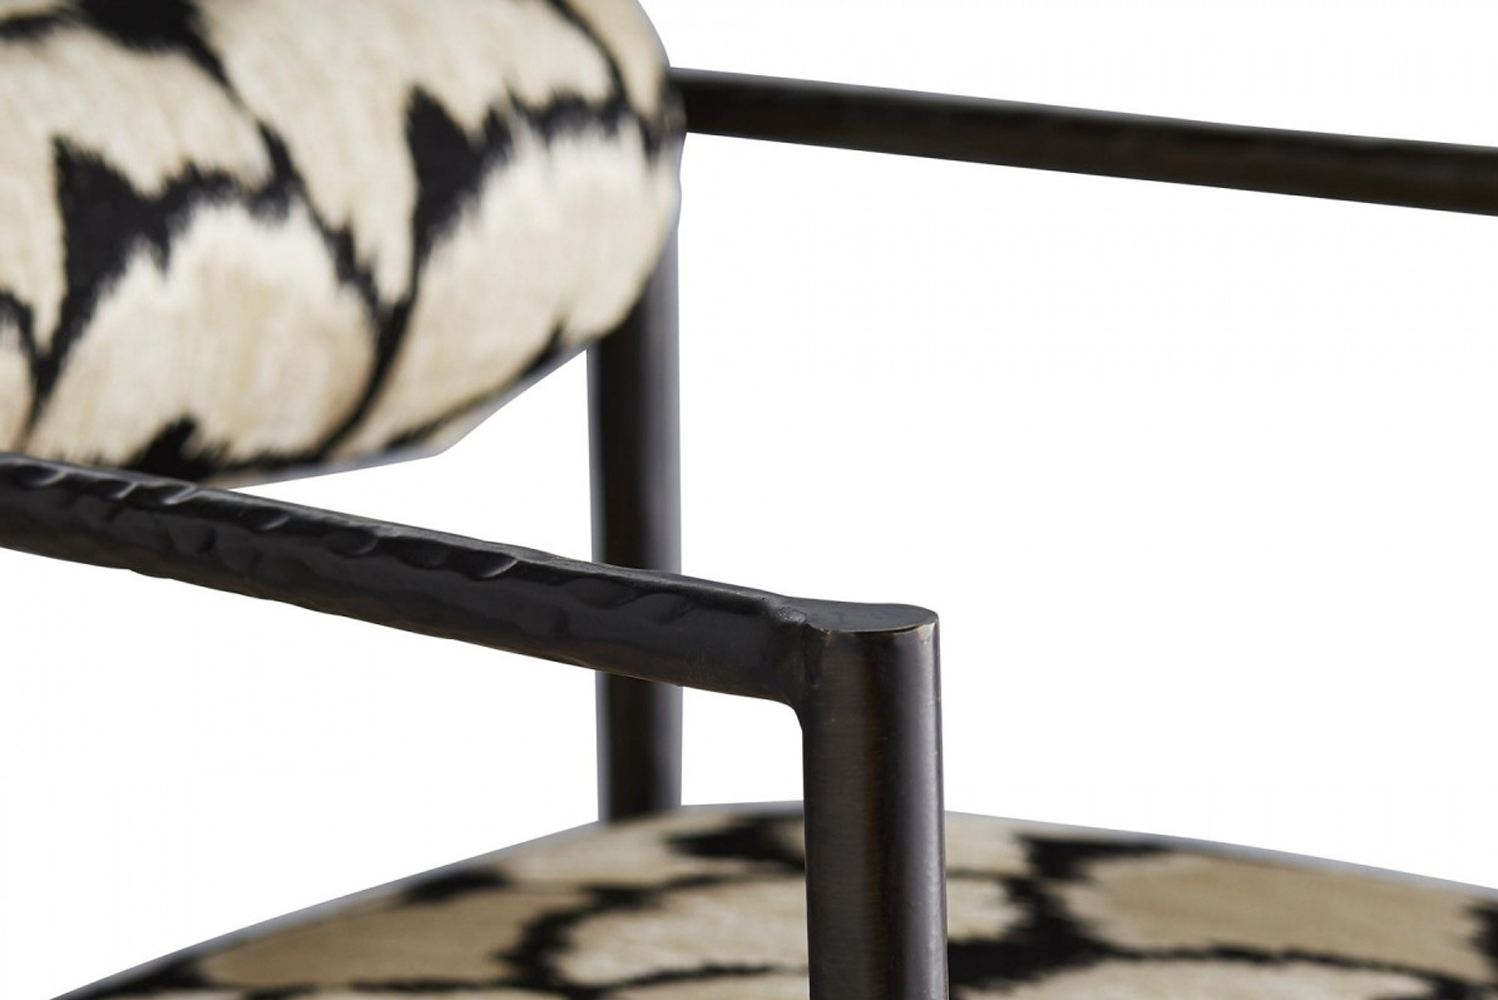 The Barbana chair has a slim frame with a tight seat and bolster back.